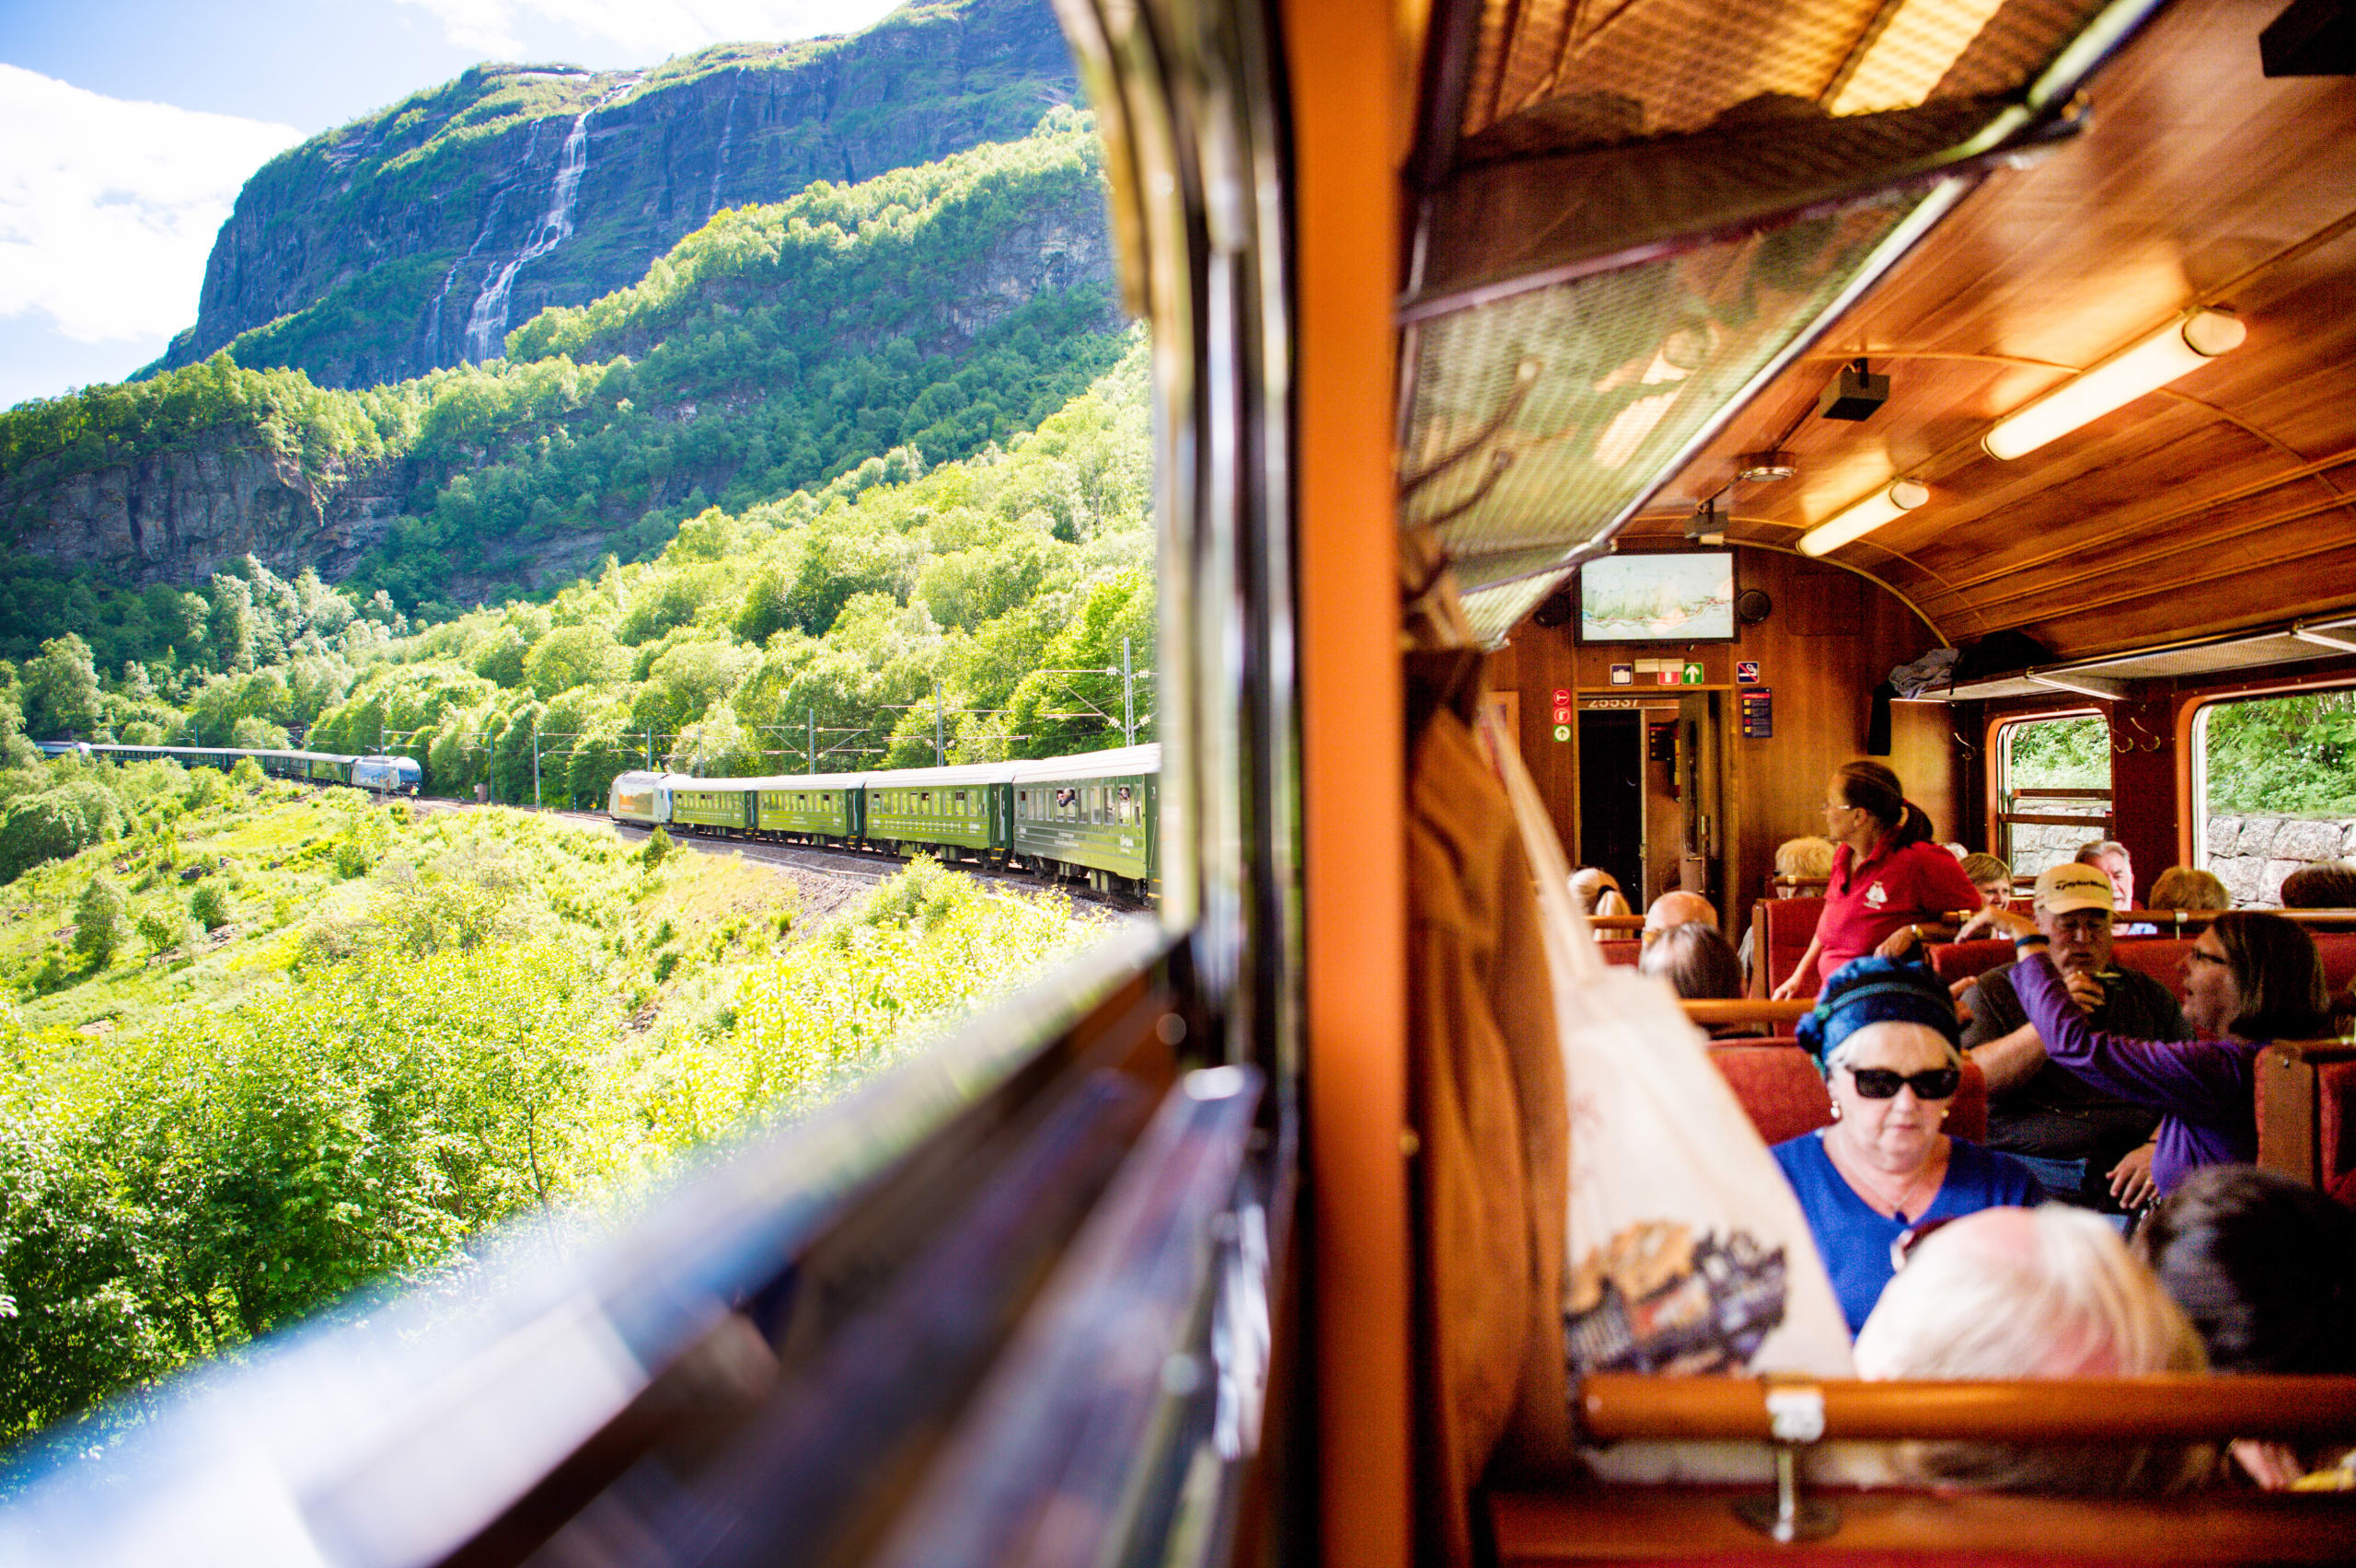 View inside and outside on Flåmsbana train